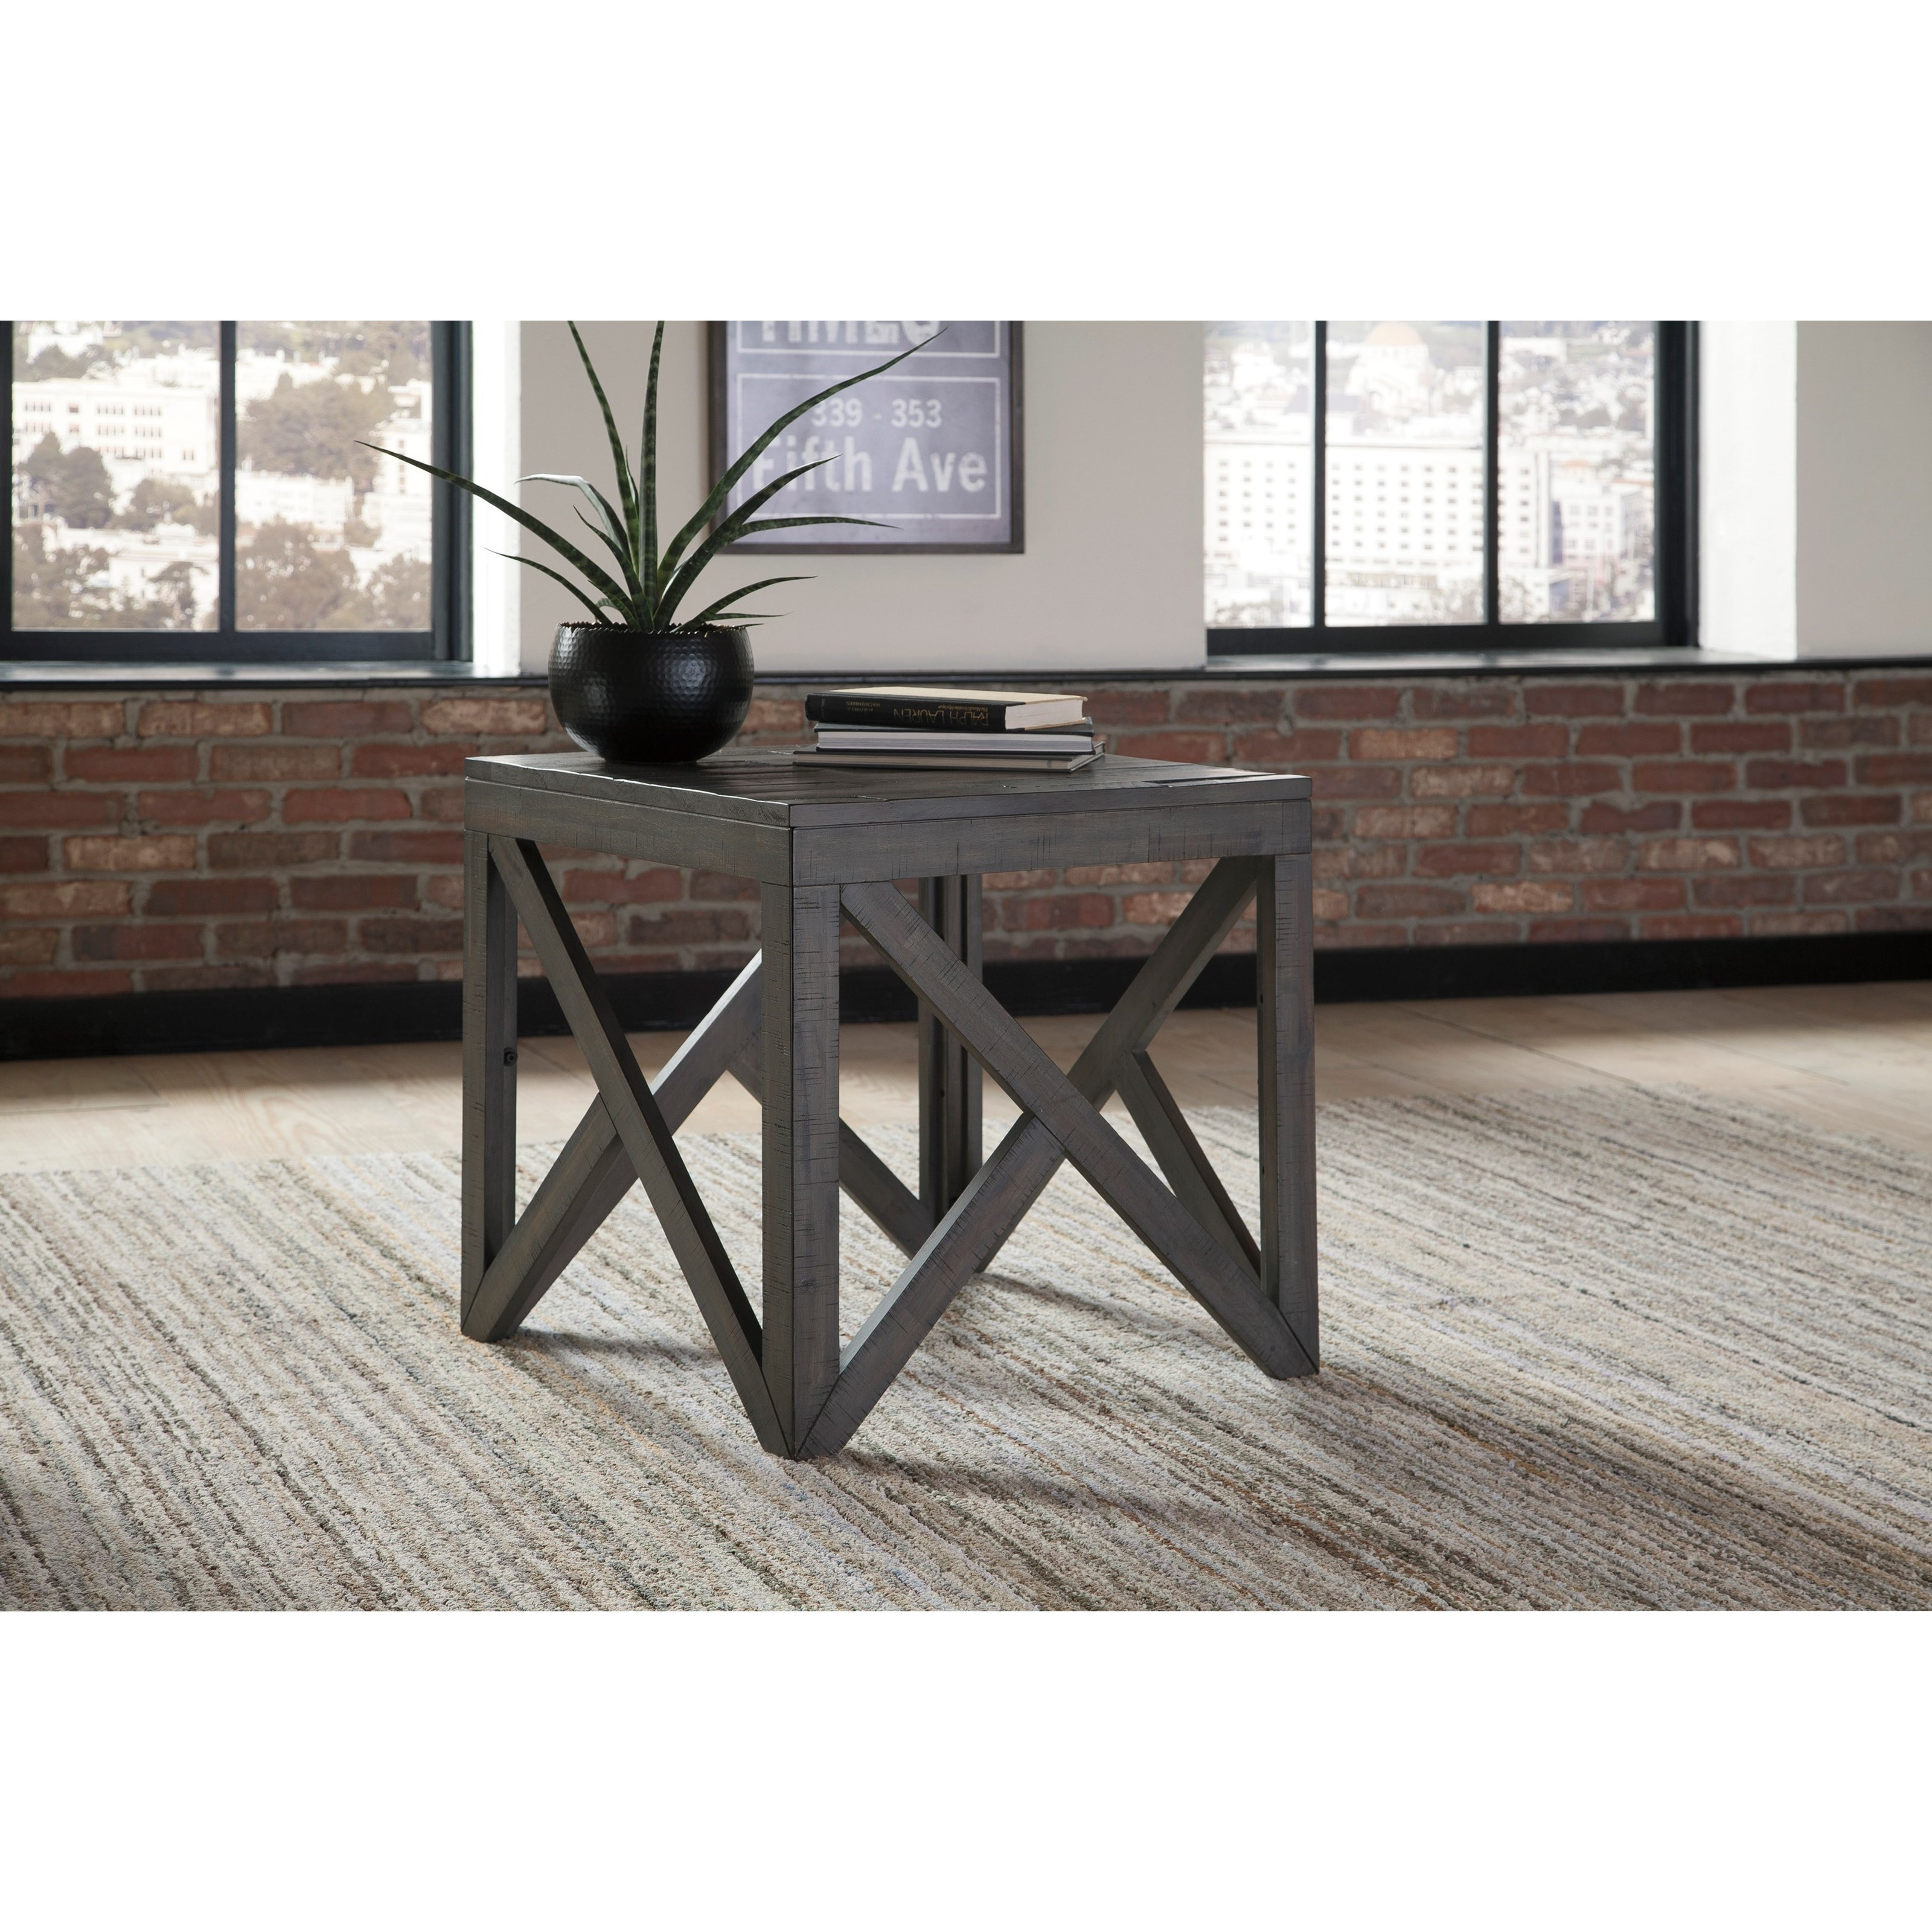 Marble Coffee Table Furniture Village: Signature Design By Ashley Haroflyn Square End Table With